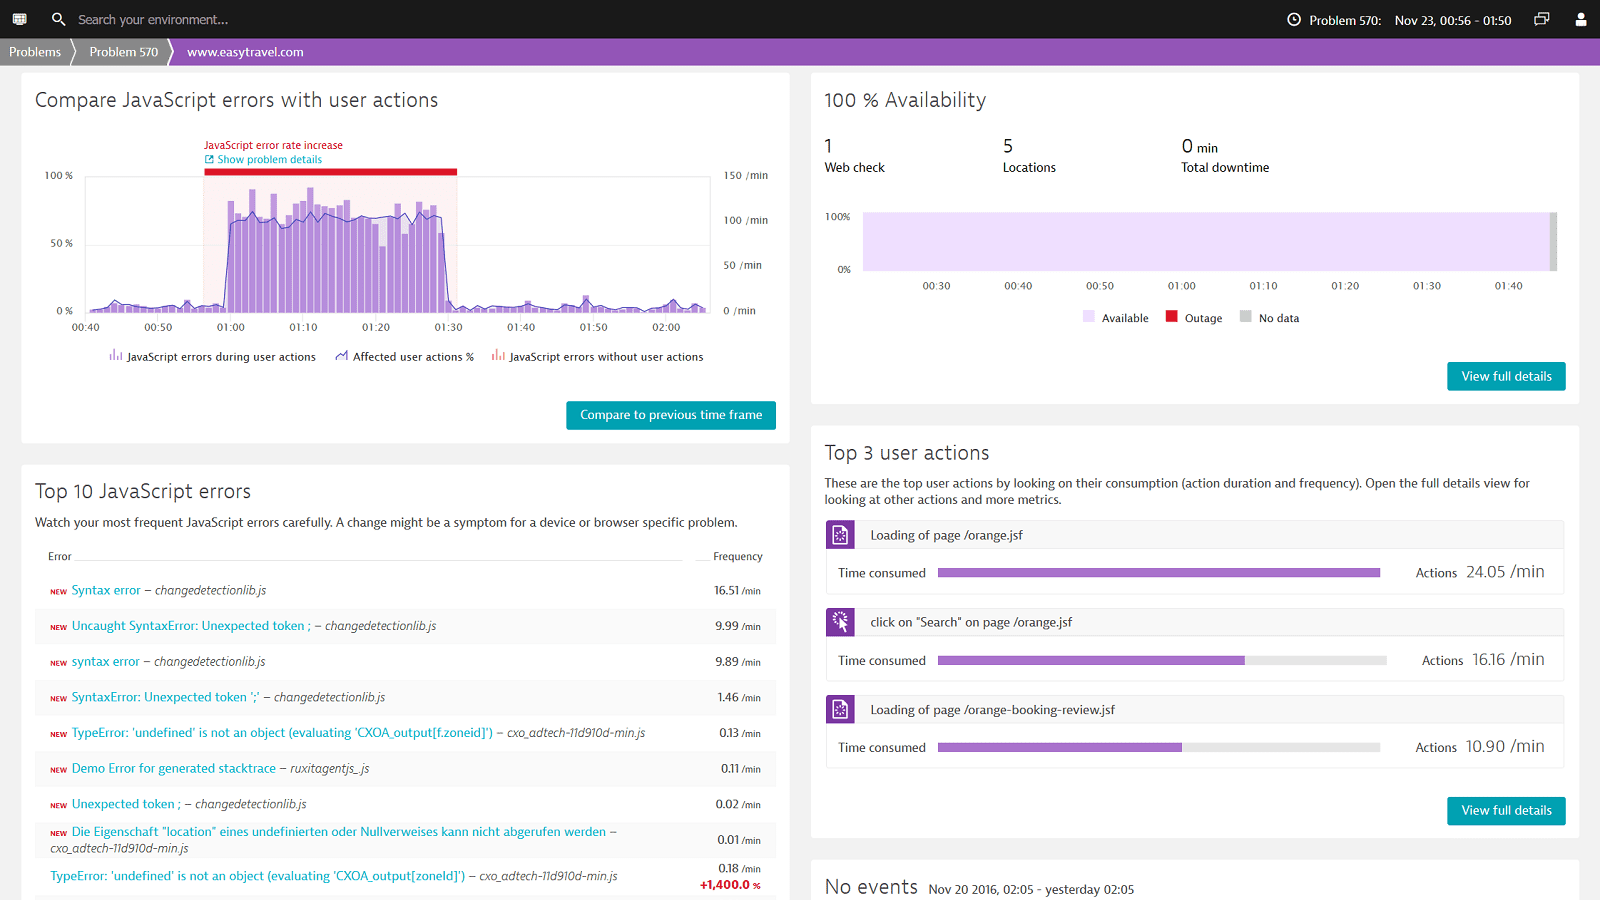 Performance monitoring for React apps | Dynatrace